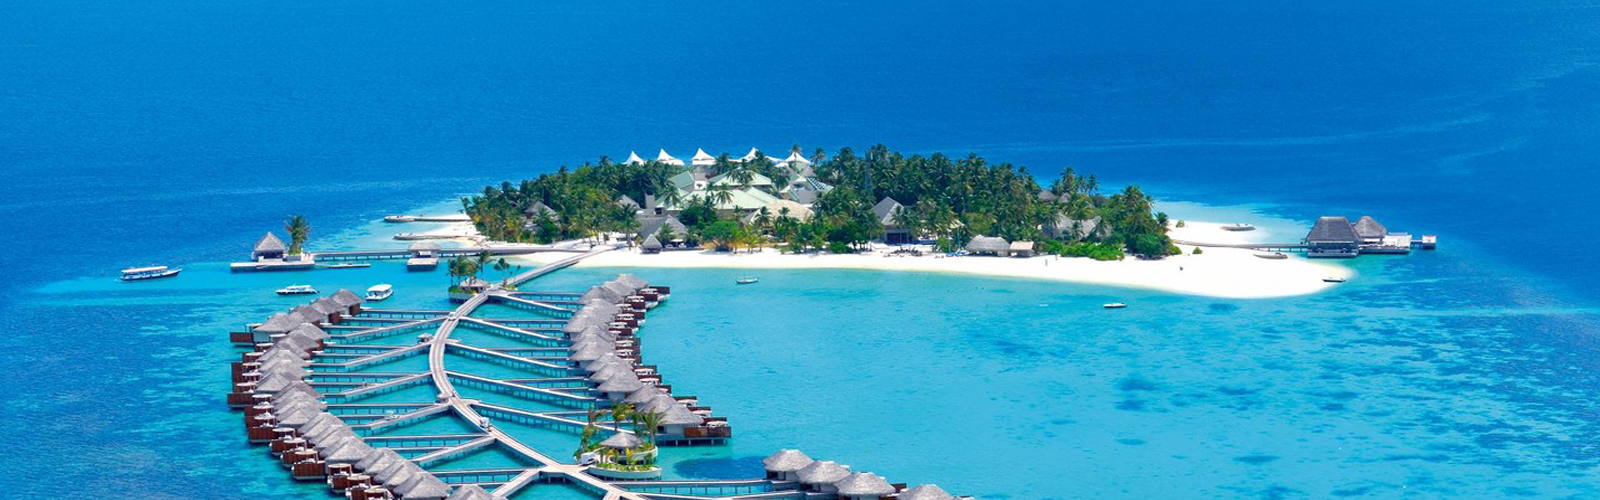 Hotels In Lakshadweep Islands With Rates